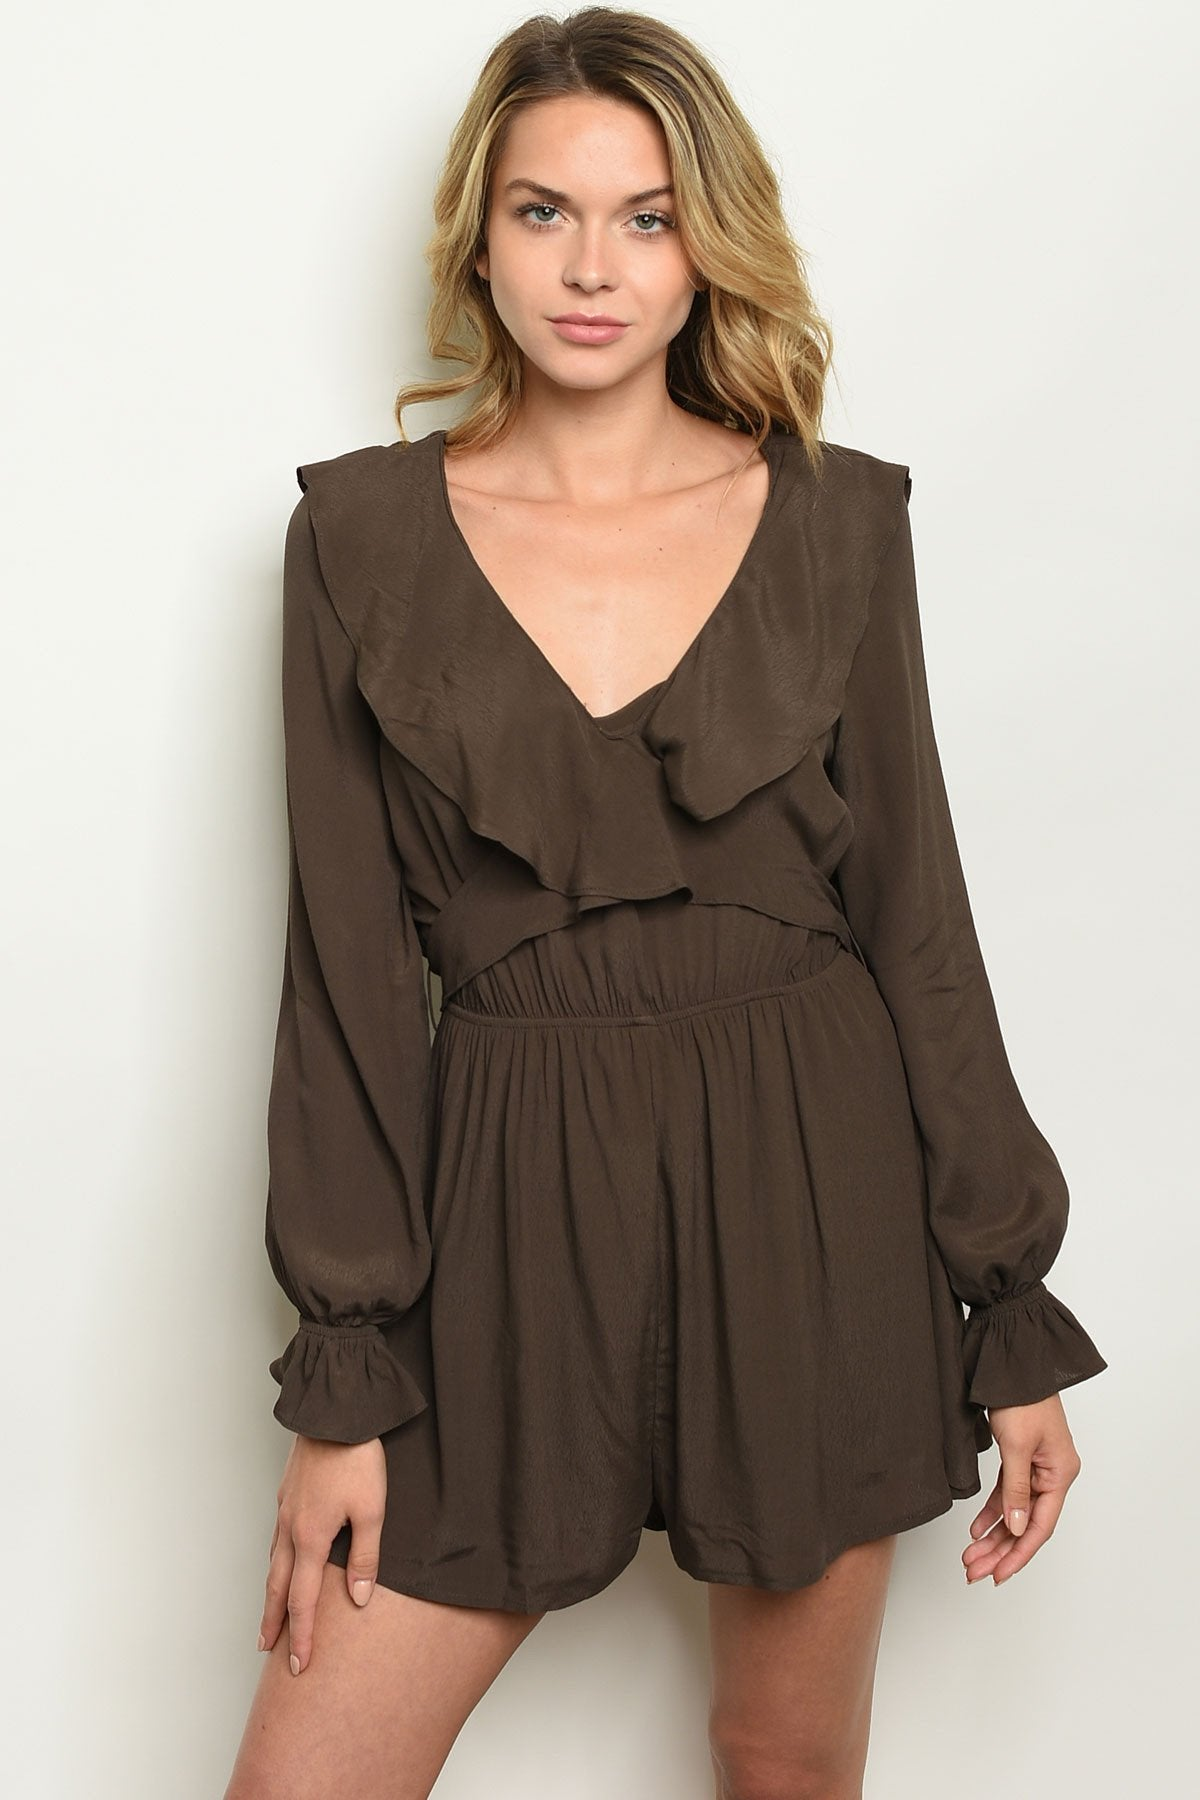 Womens Romper- Olive or Mustard - Manifest Best Boutique